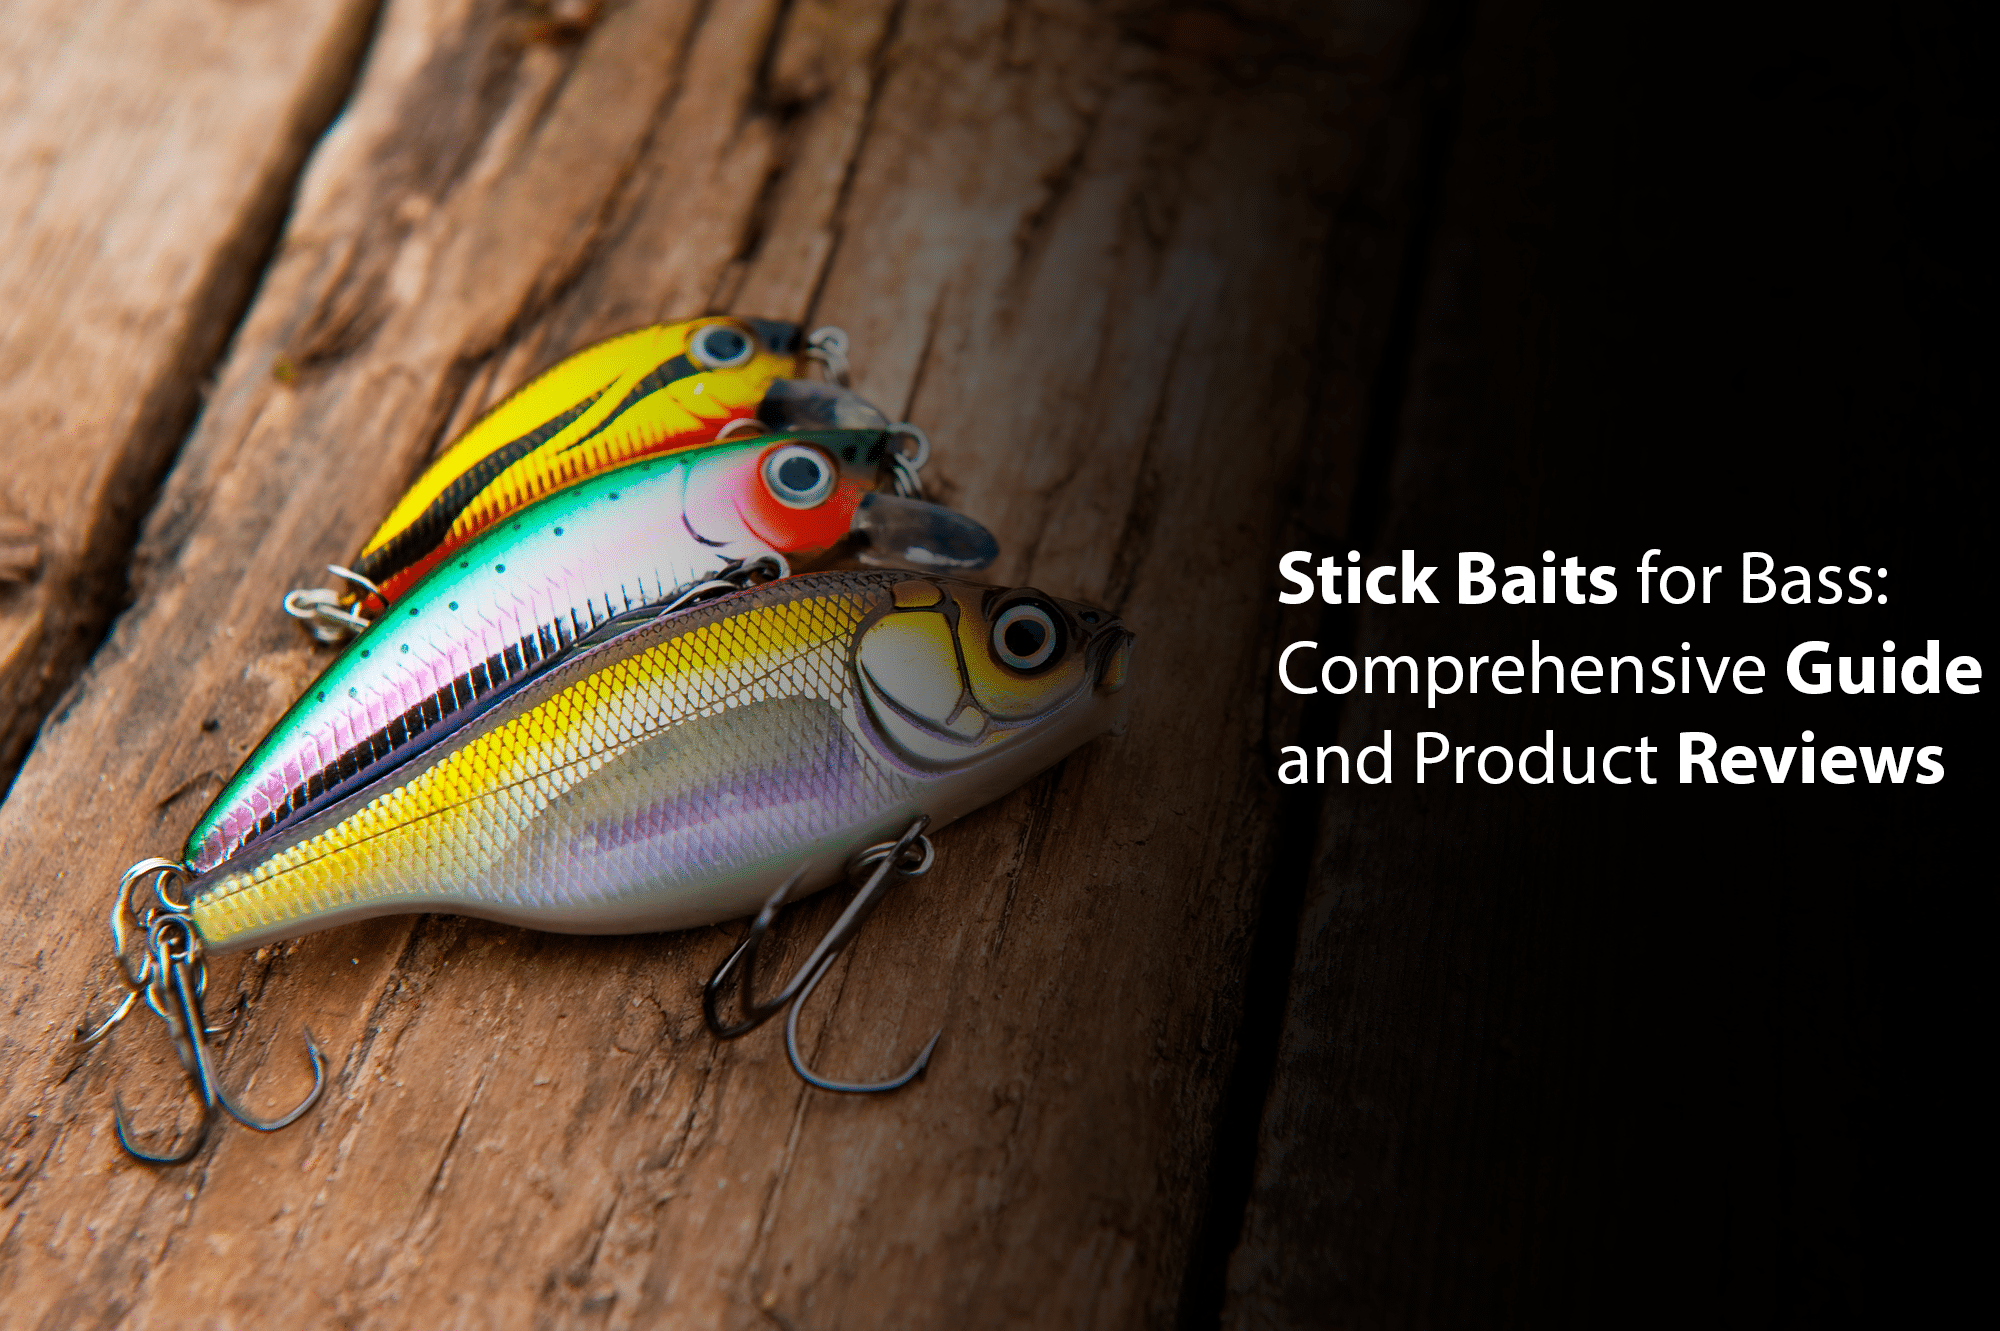 Stick Baits for Bass: Comprehensive Guide and Product Reviews